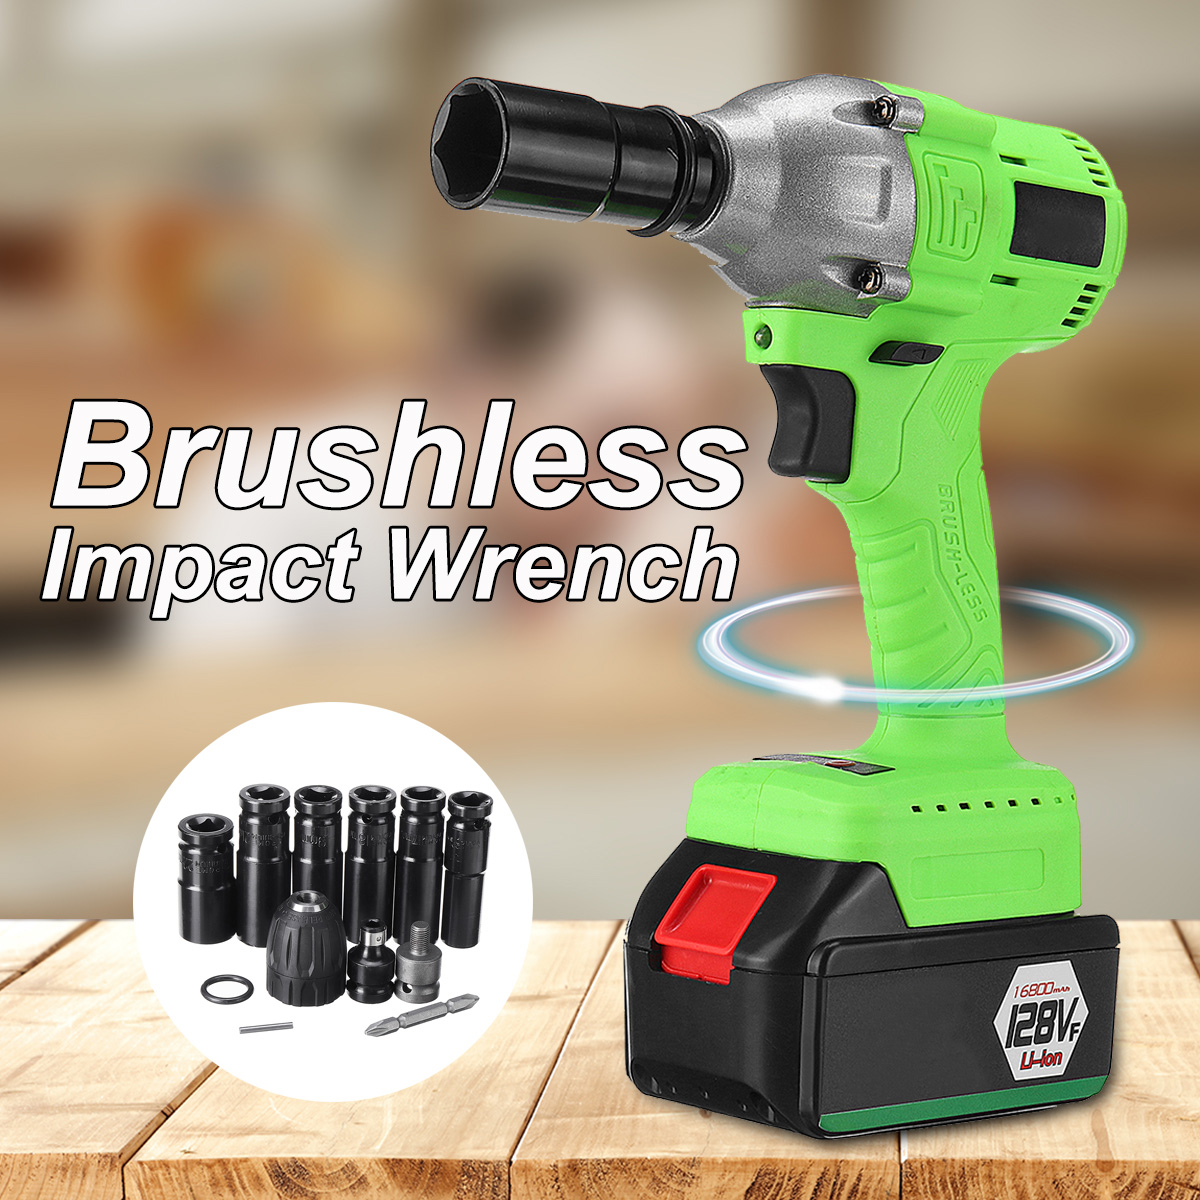 12800/16800/18800/21800mAh Electric Brushless Electric Wrench Li-Ion Battery Wrench Cordless Speed Control Wrench Power Tool electric impact wrench 98 128 168 188vf electric brushless li ion battery wrench 10mm chuk with box cordless speed control power